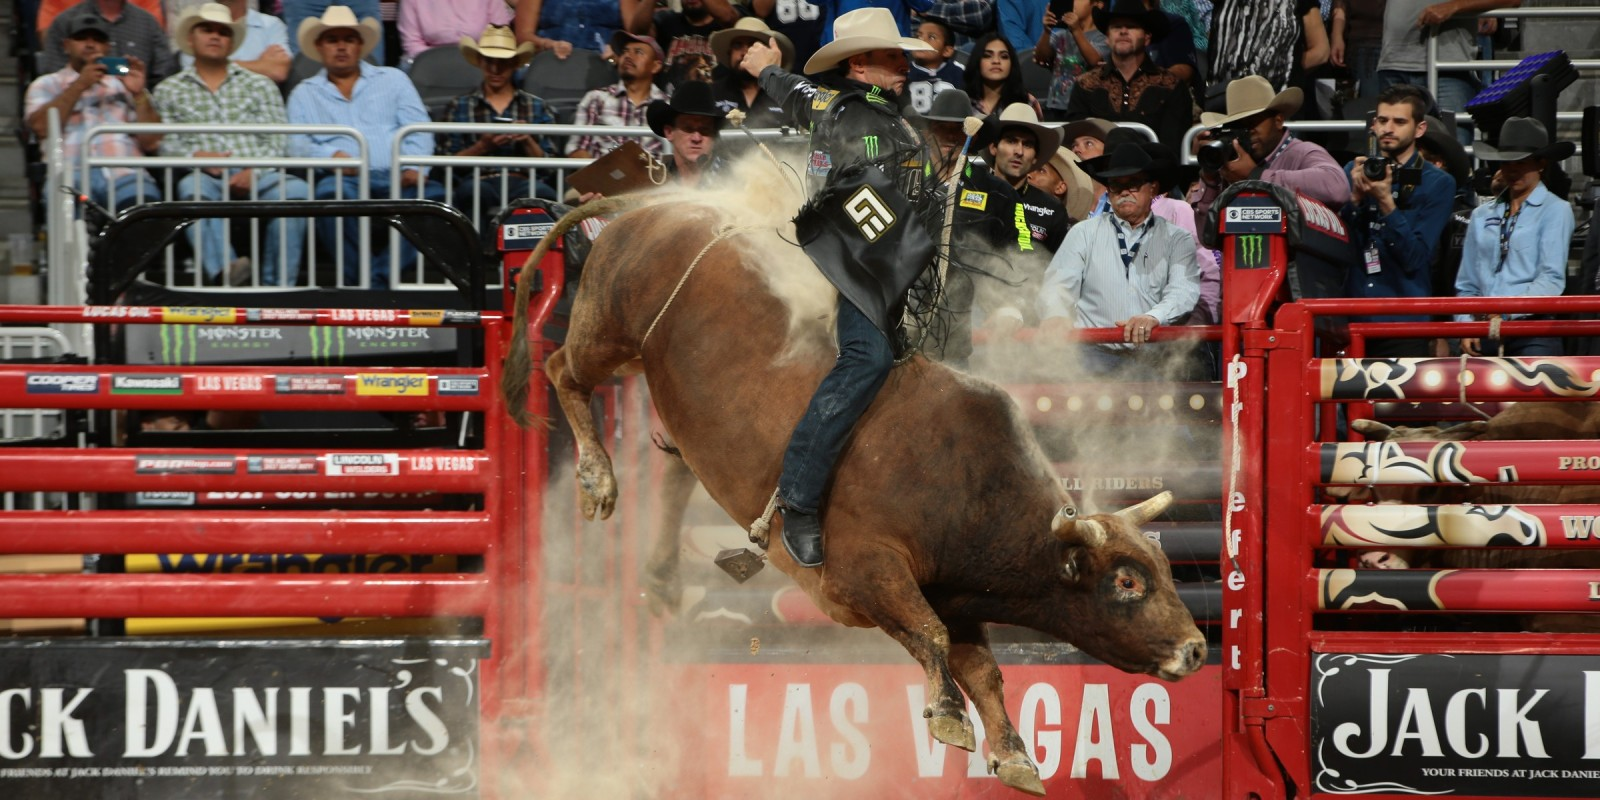 Guilherme Marchi rides Curtis Mendell's Red Rover for 87.5 during the Championship round of the Built Ford Tough series PBR World Finals.